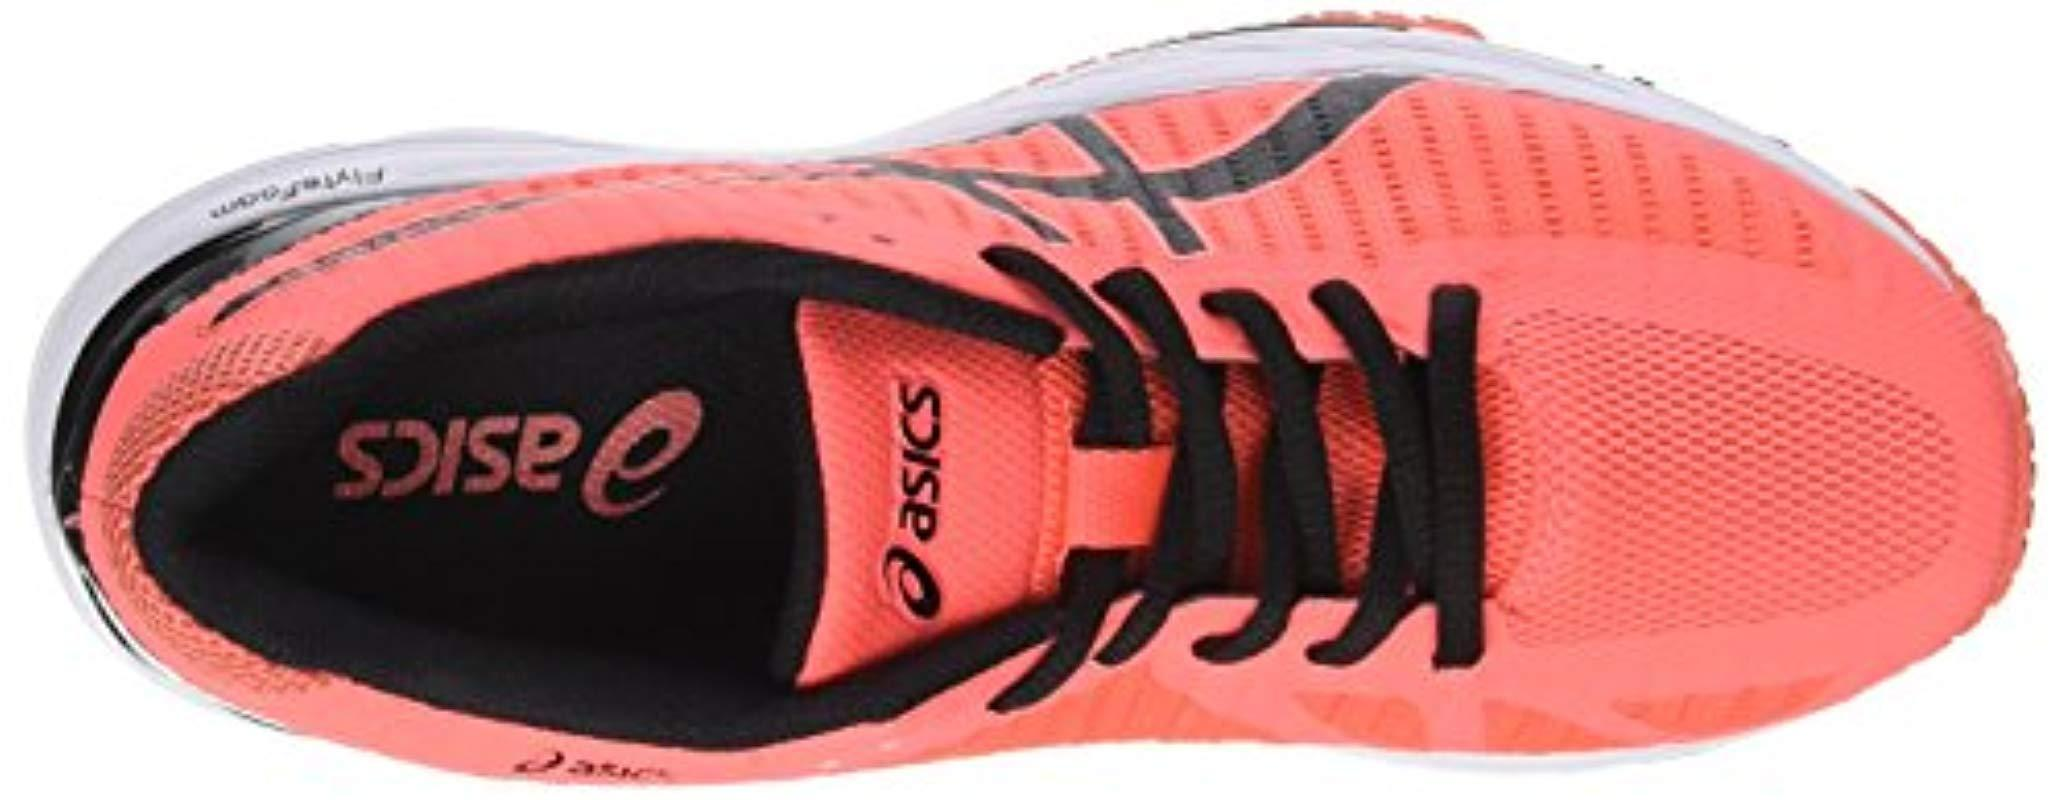 low priced 71da9 cc3ba Asics Gel-ds Trainer 23 Running Shoes - Lyst